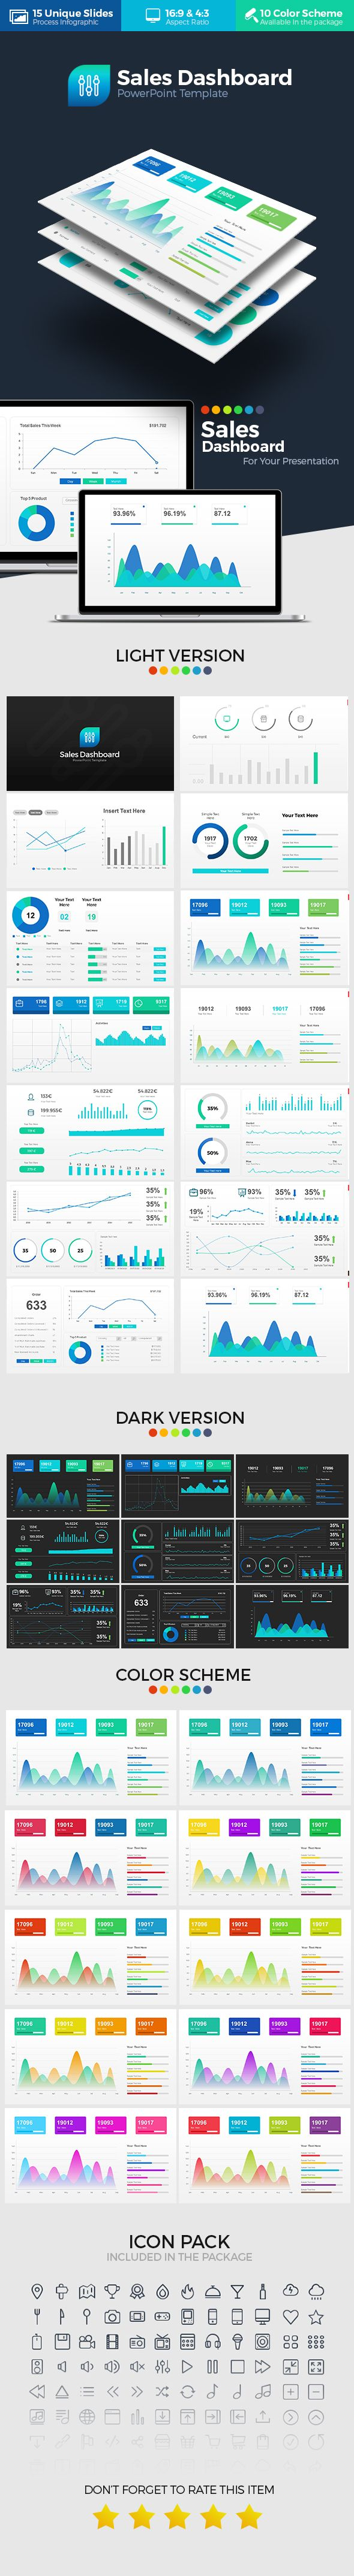 Sales dashboard powerpoint template data charts powerpoint overview flat clean minimalist elegant and flexible powerpoint presentation template perfect alramifo Choice Image